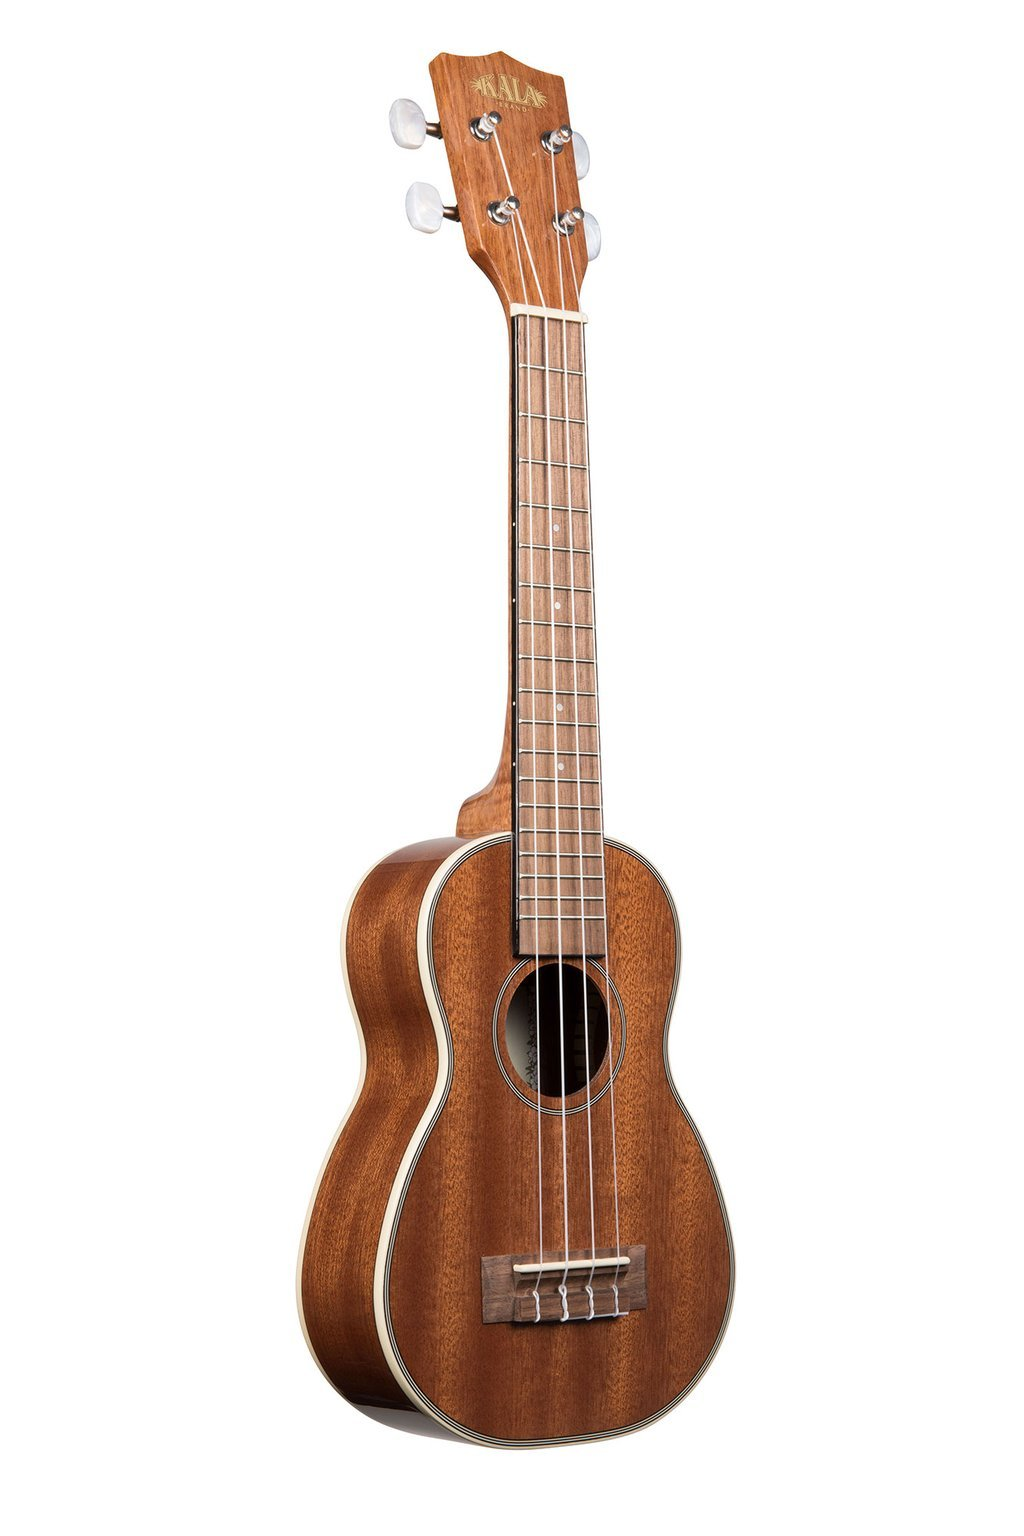 Kala Mahogany Gloss Finish Ukulele